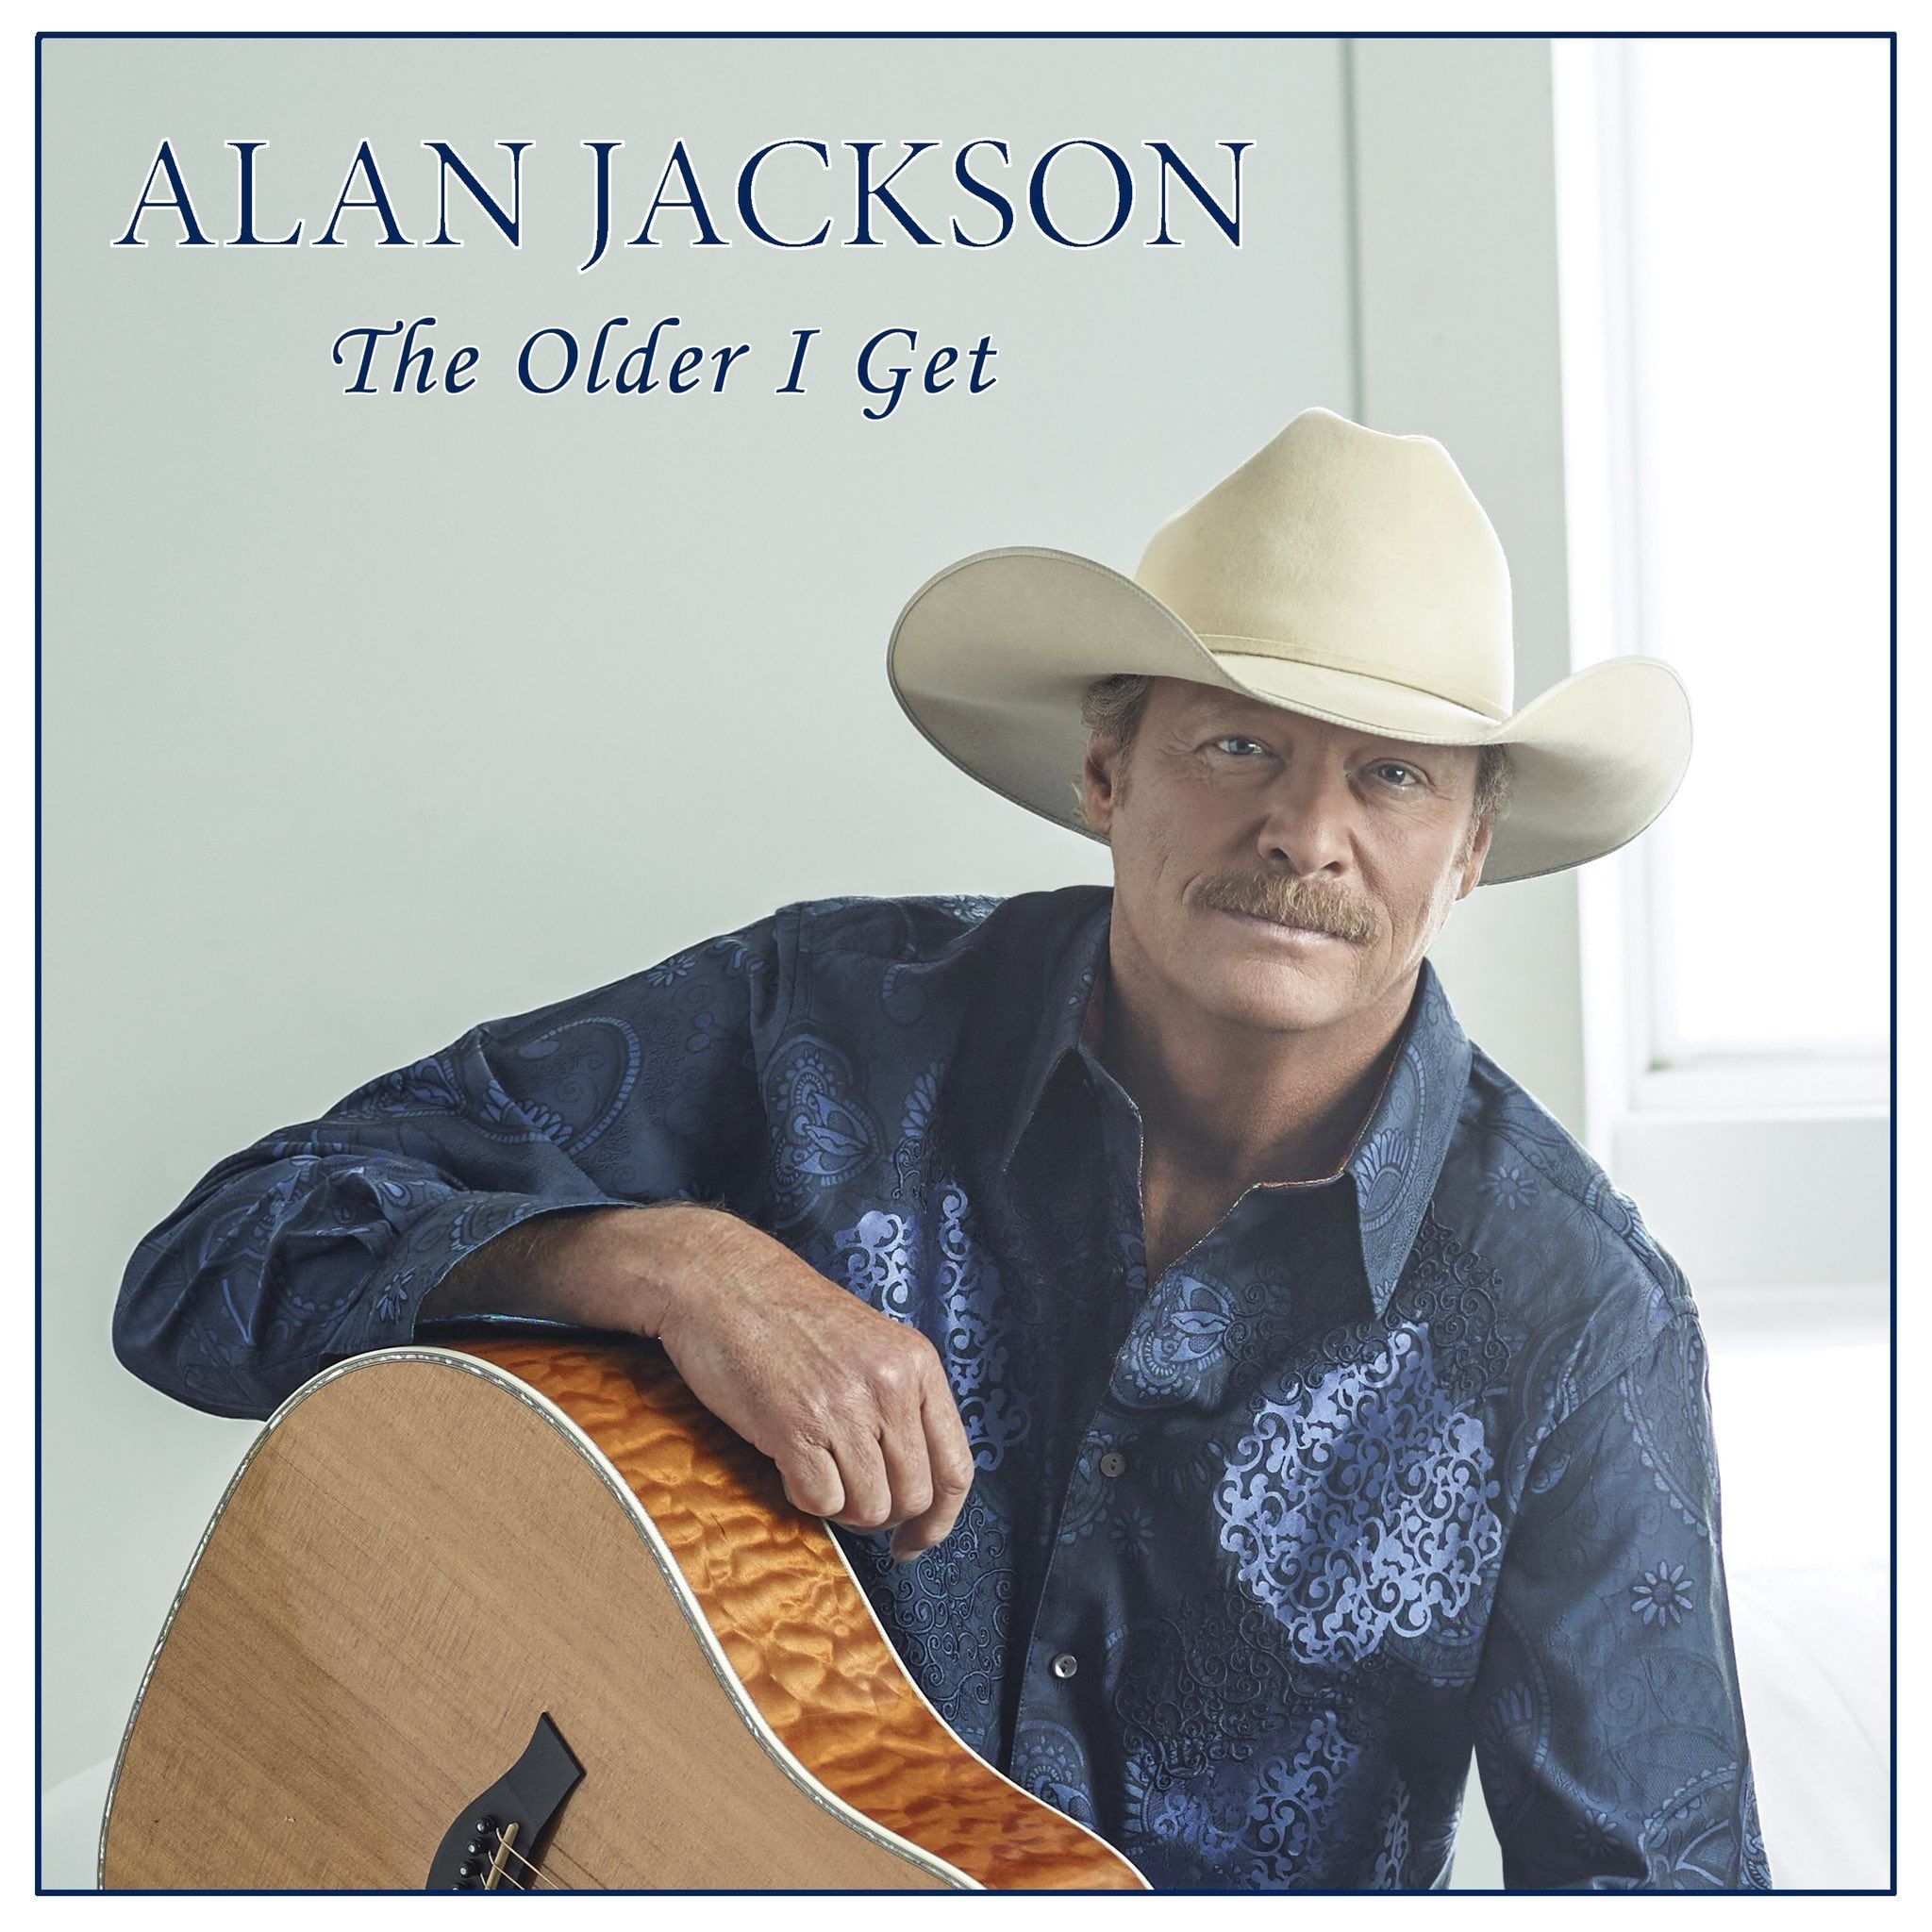 Pin By Joanna Gomez On Alan Jackson Alan Jackson The Older